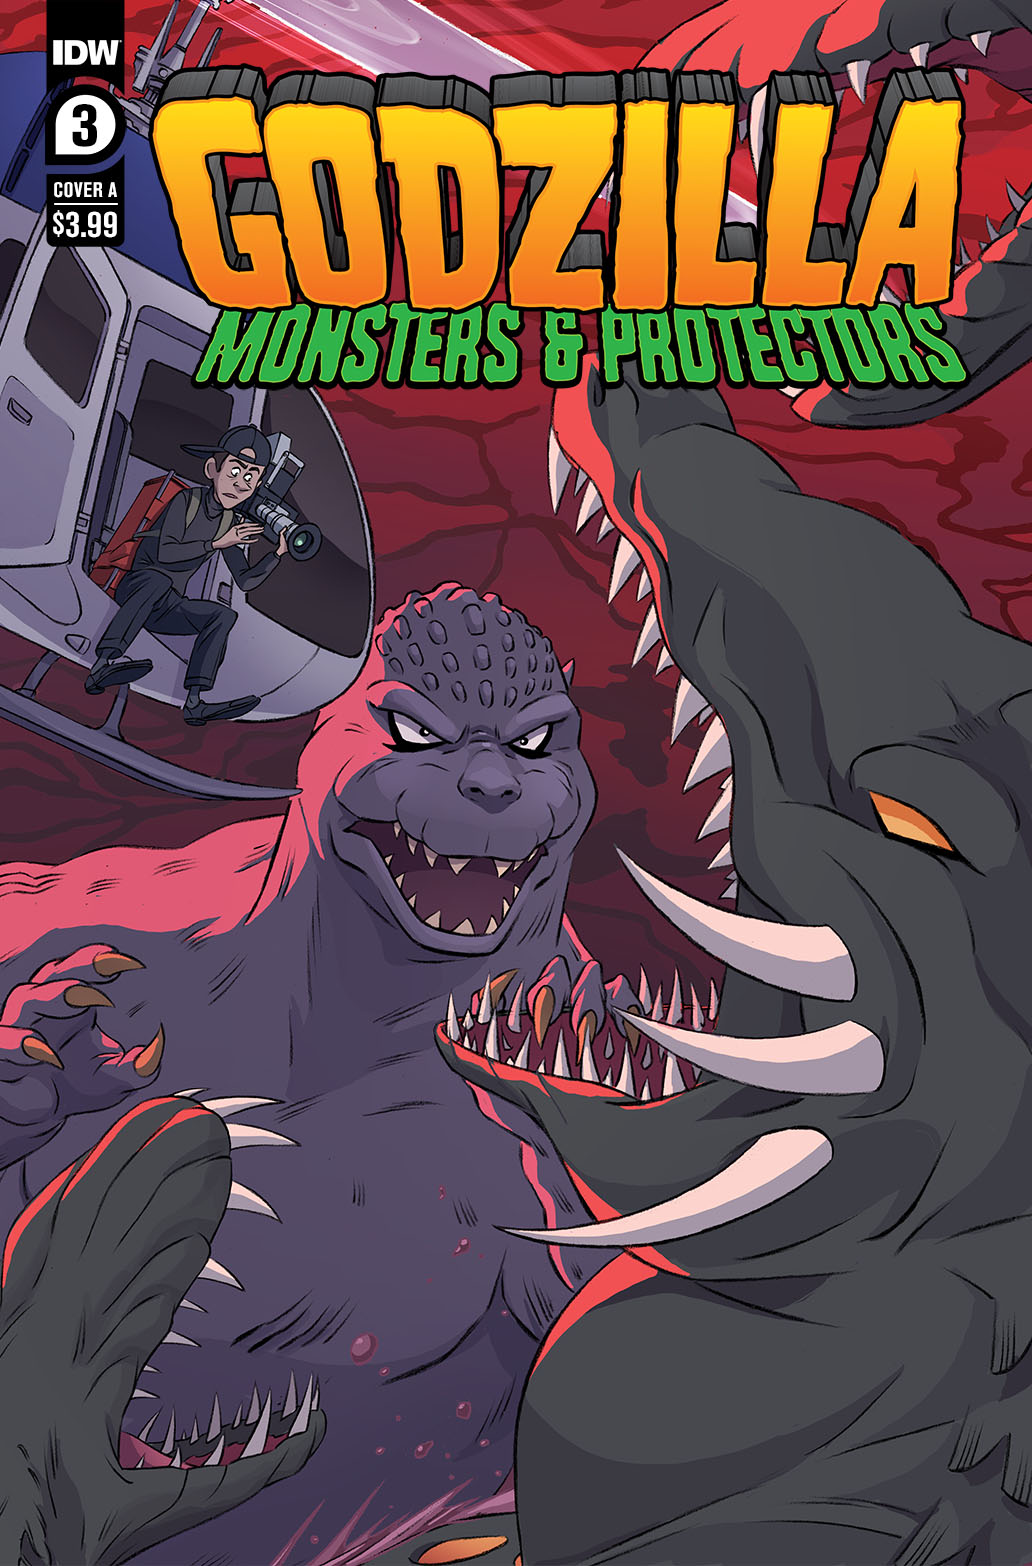 Godzilla_MP03-coverA-copy IDW Publishing June 2021 Solicitations